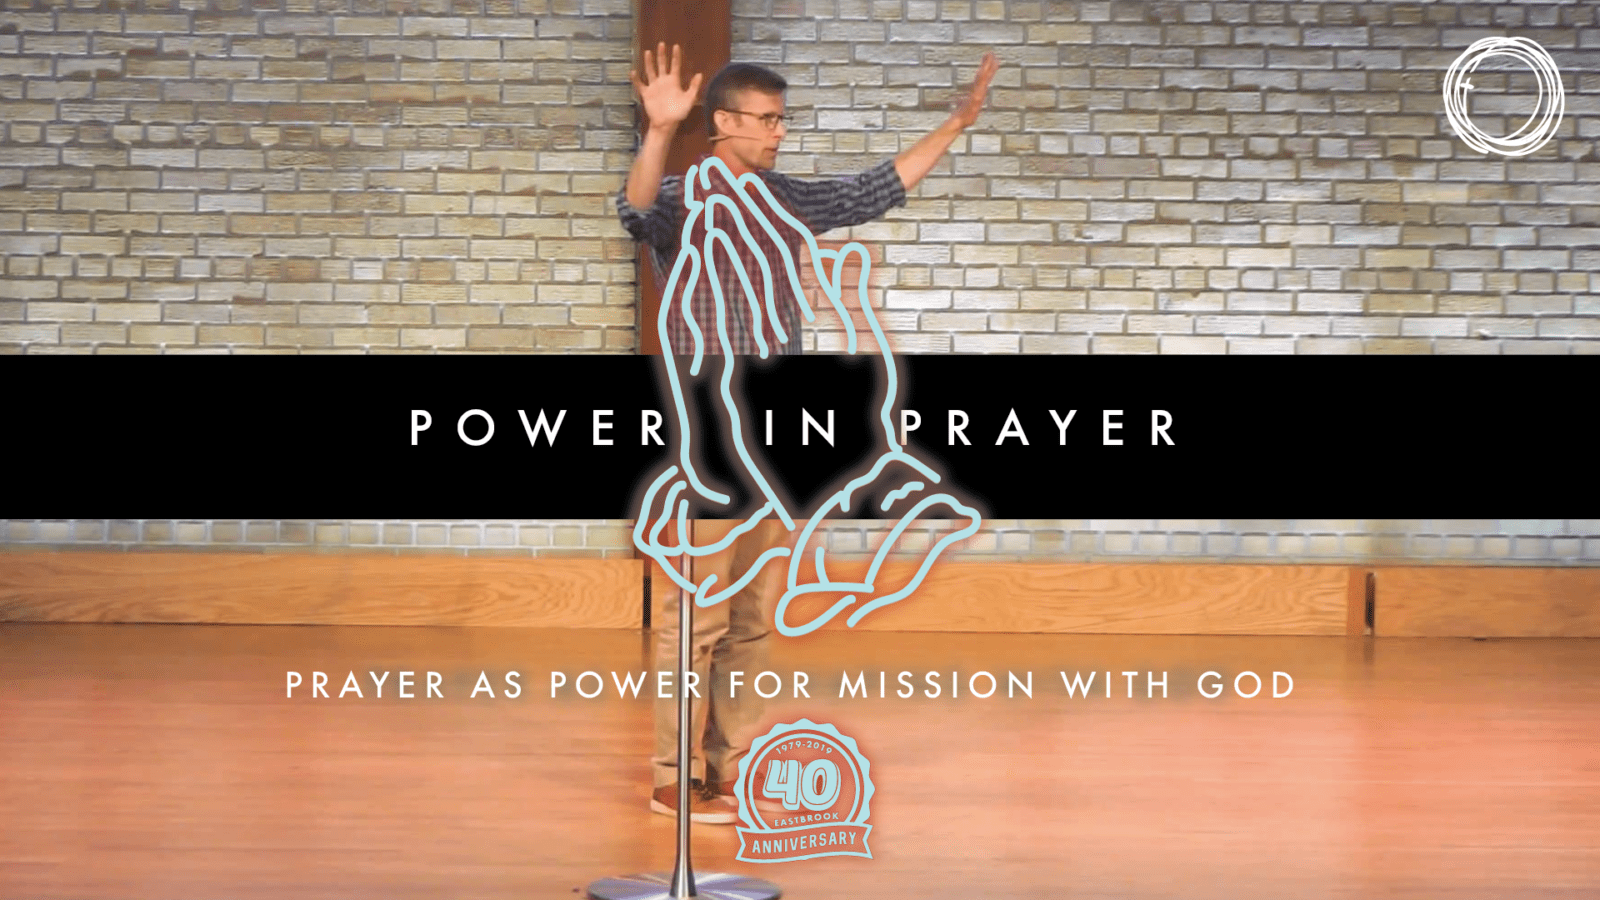 Prayer as Power for Mission with God